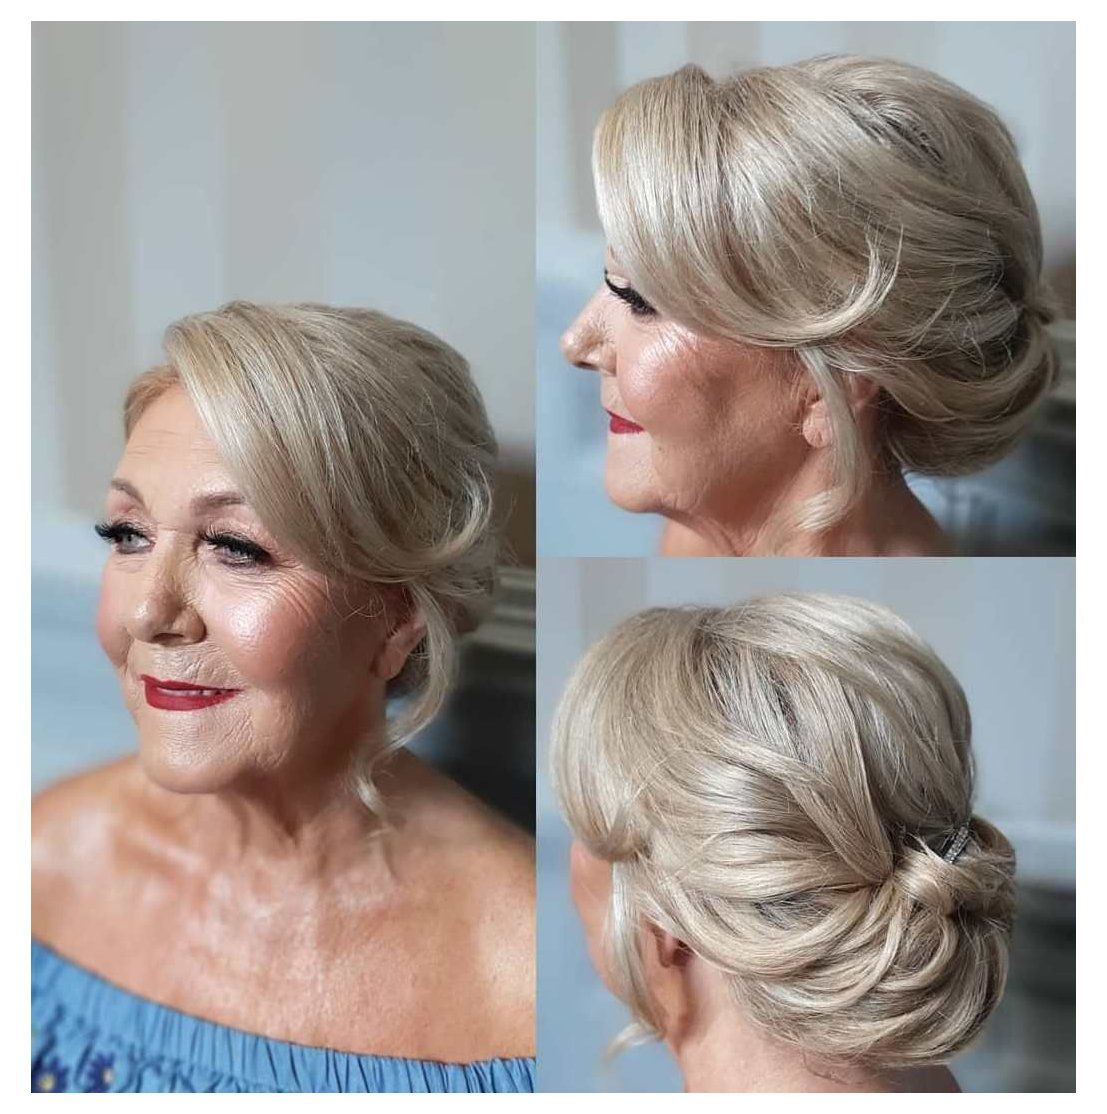 30 Gorgeous Mother Of The Bride Hairstyles For 2020 Short Hair Updo For Wedding Mother Mother Of The Groom Hairstyles Short Wedding Hair Short Hair Updo